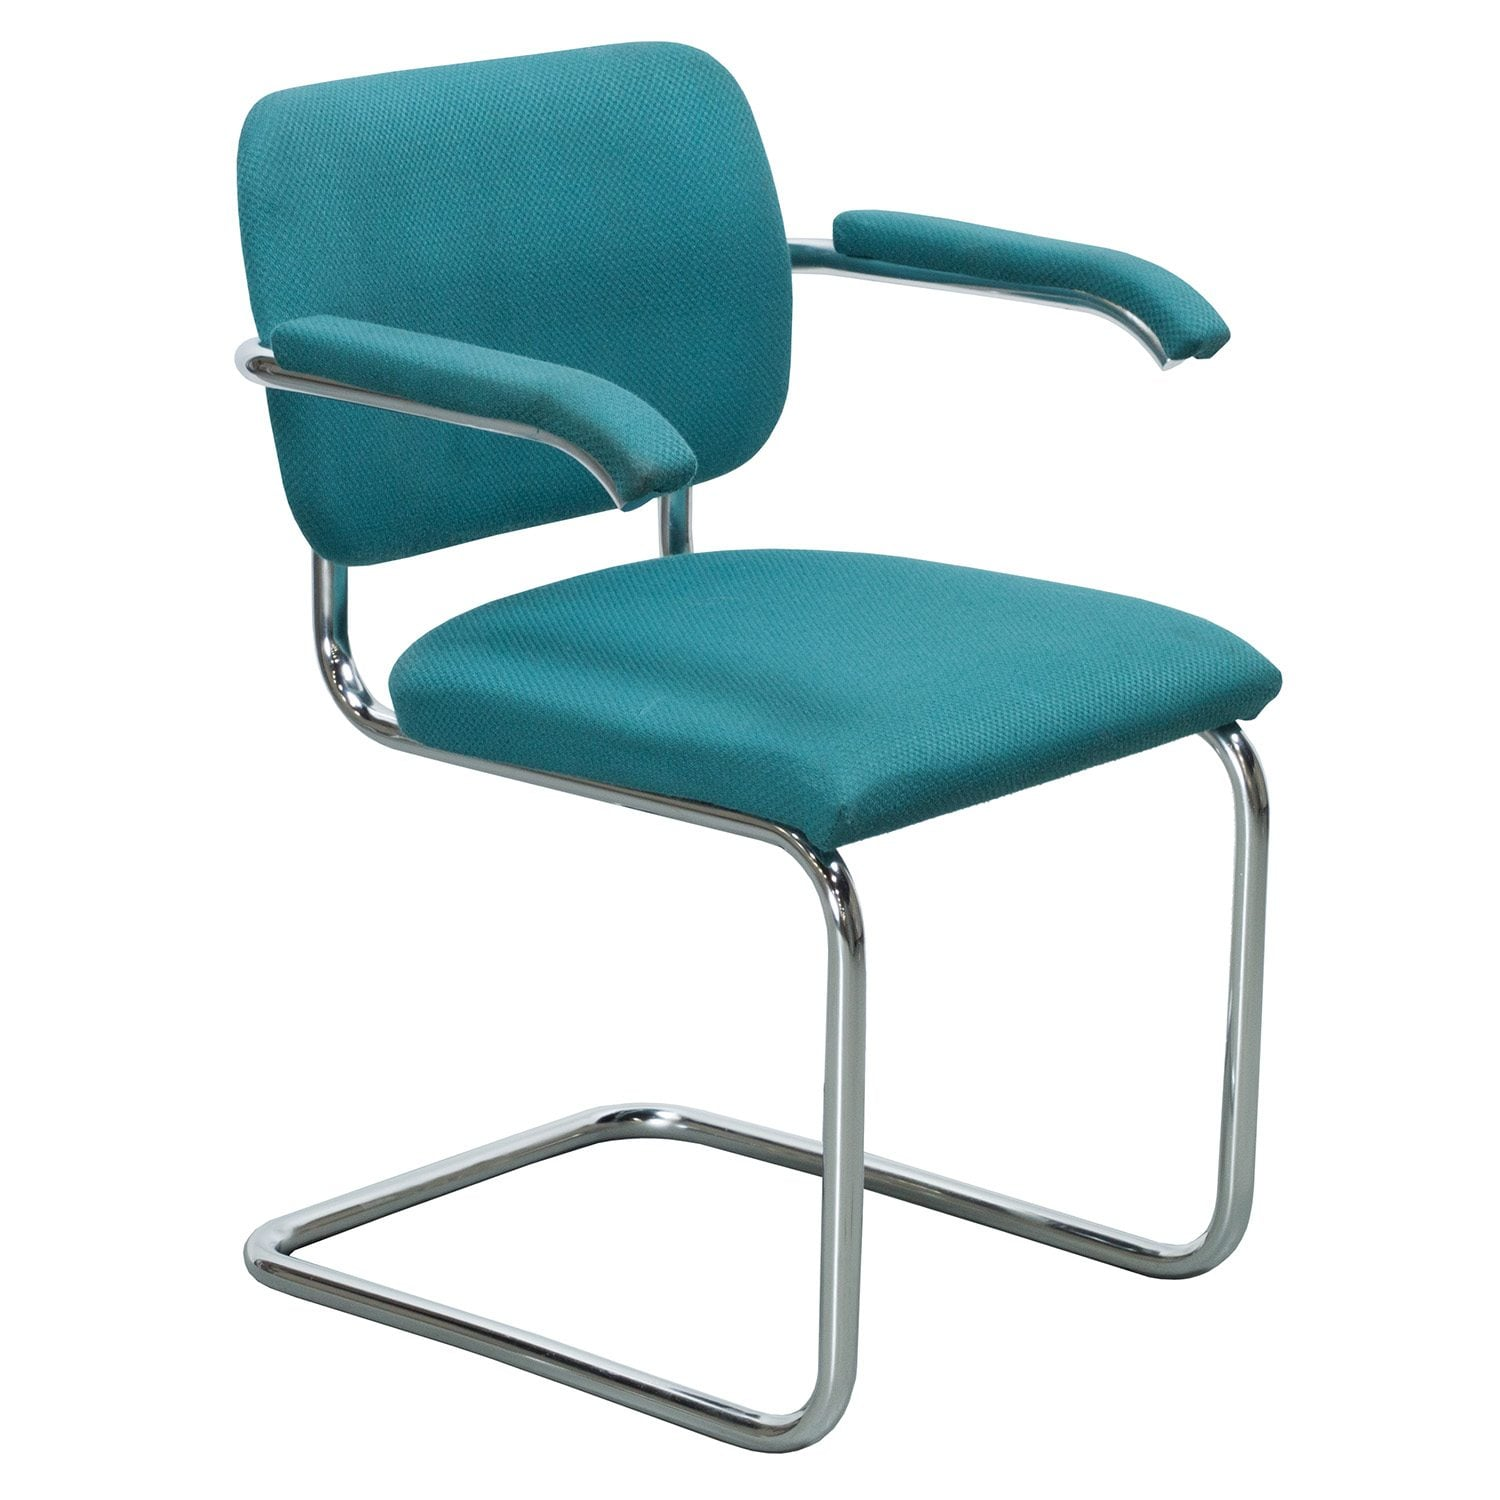 aqua desk chair target.com covers thonet s 64 pv used side national office